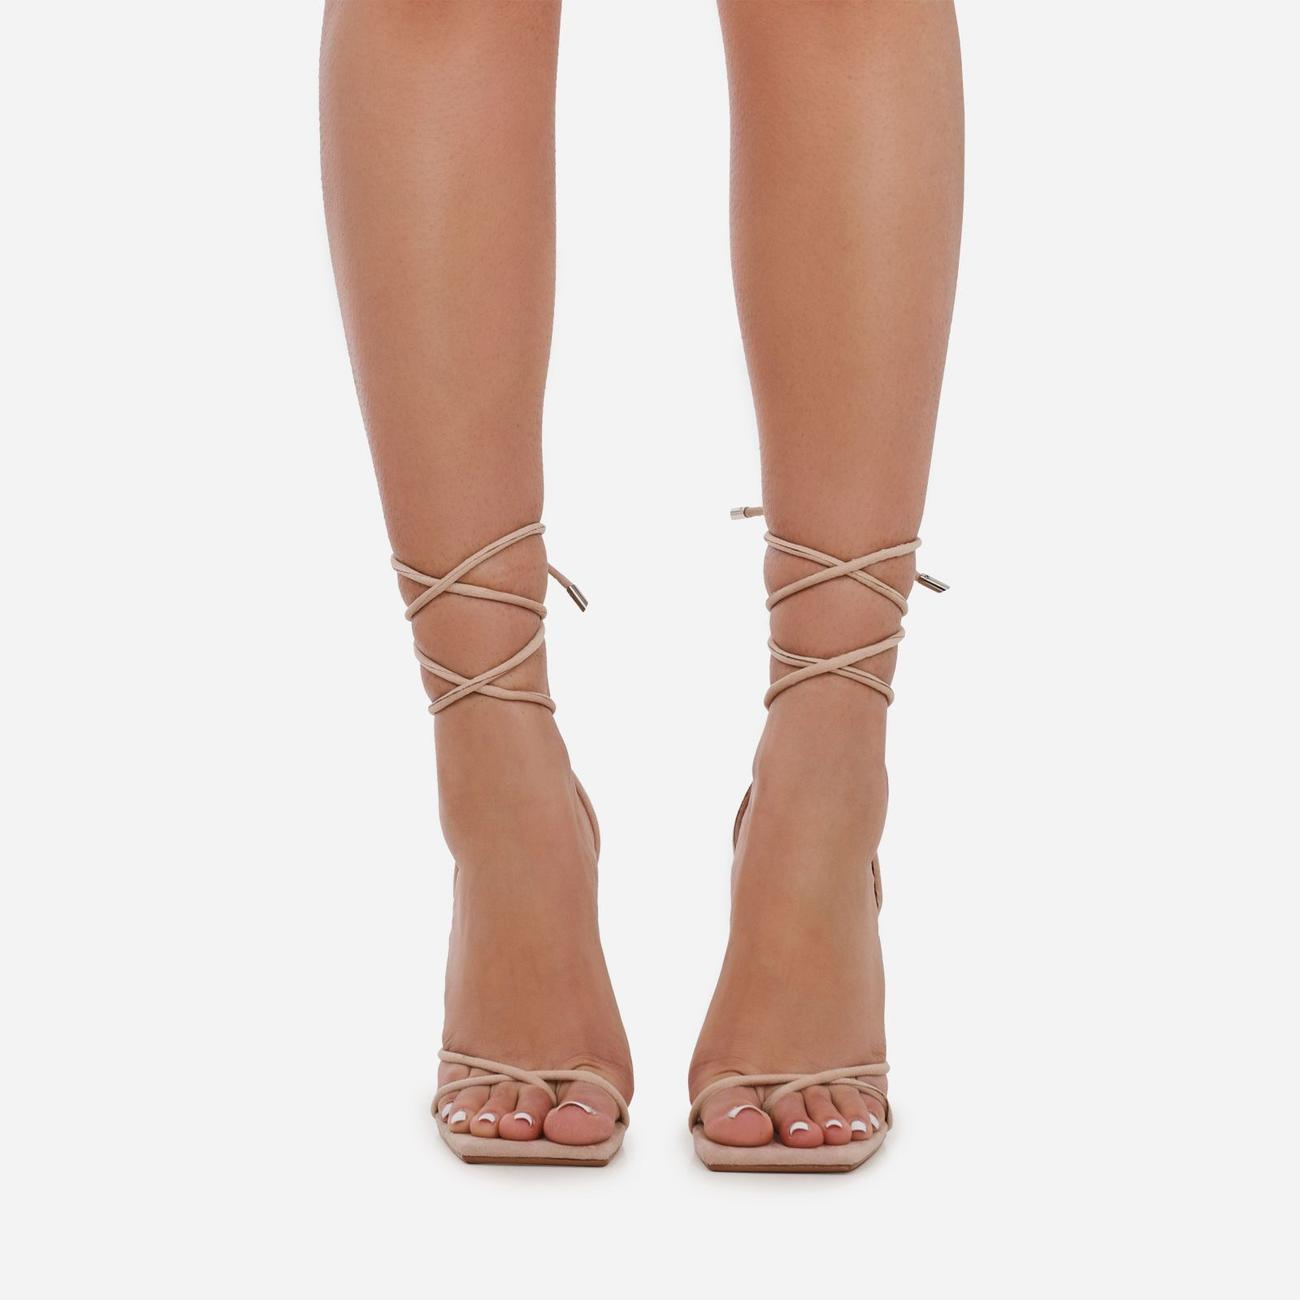 Emily Square Toe Lace Up Pyramid Heel In Nude Faux Suede Image 3